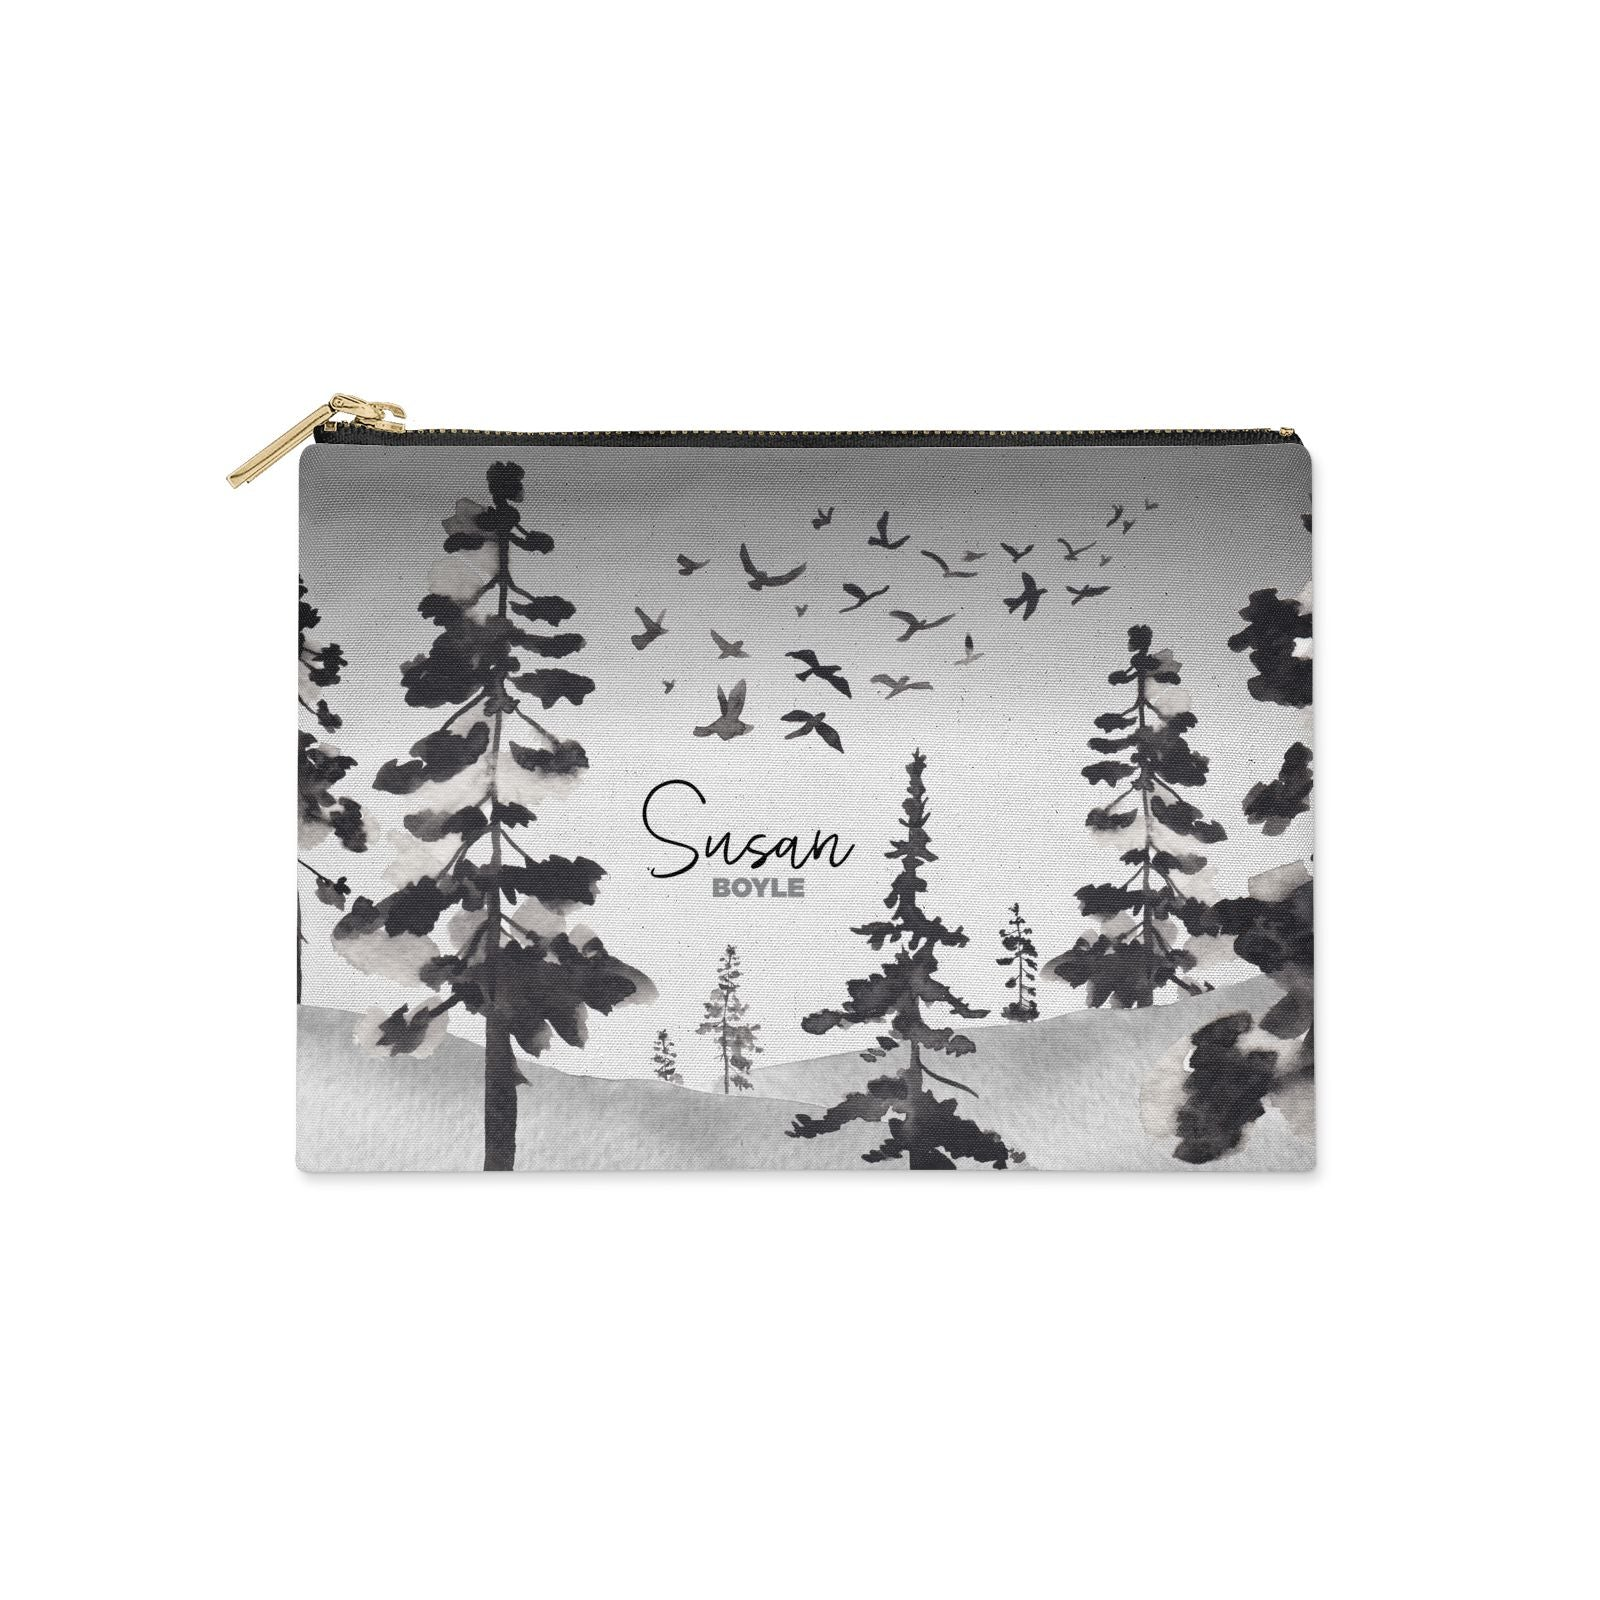 Personalised Monochrome Forest Clutch Bag Zipper Pouch